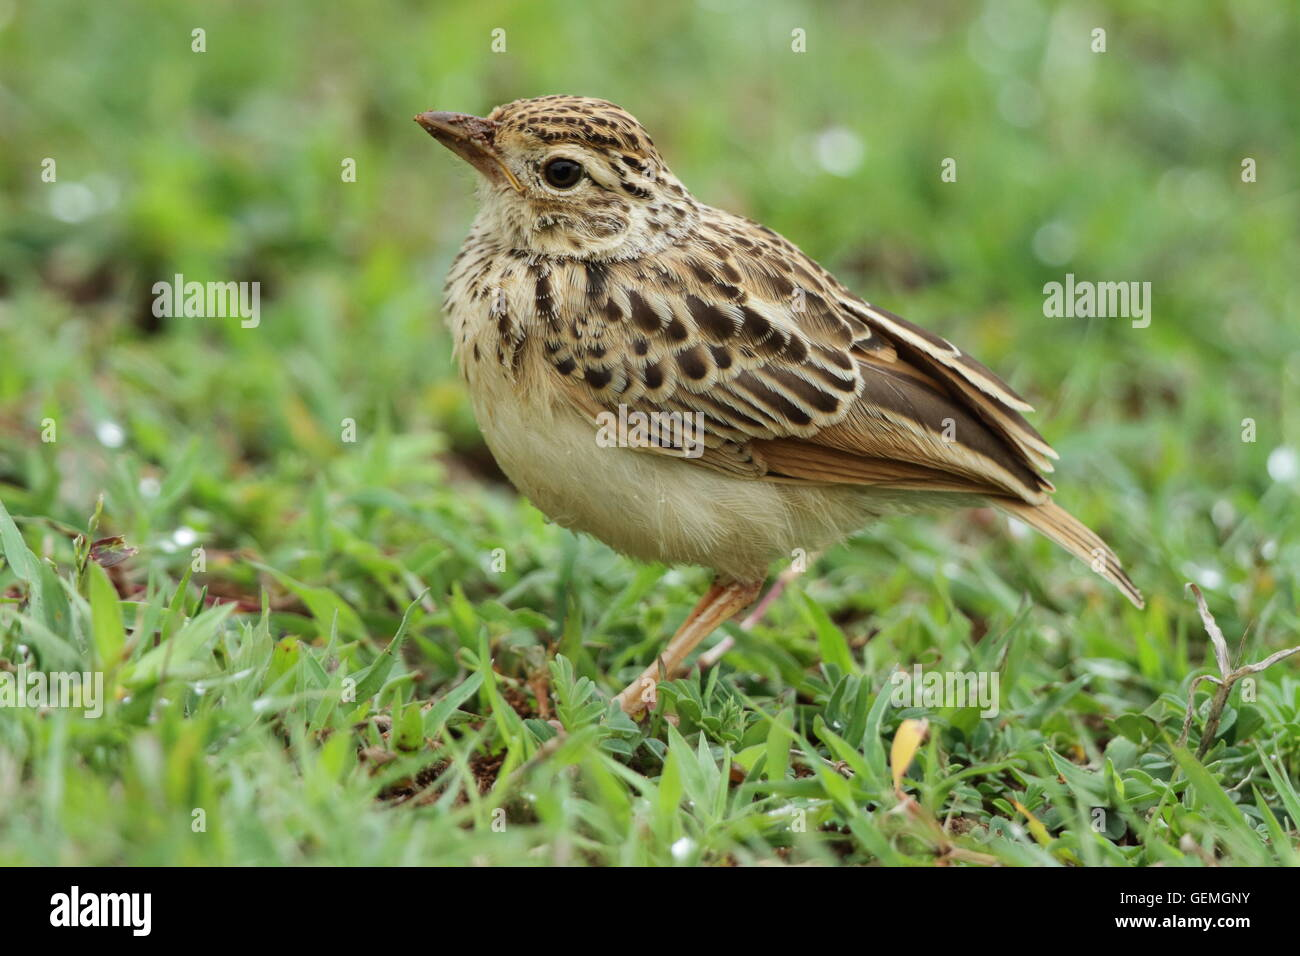 The Indochinese bush lark (Mirafra erythrocephala) is a species of lark in the Alaudidae family. Stock Photo